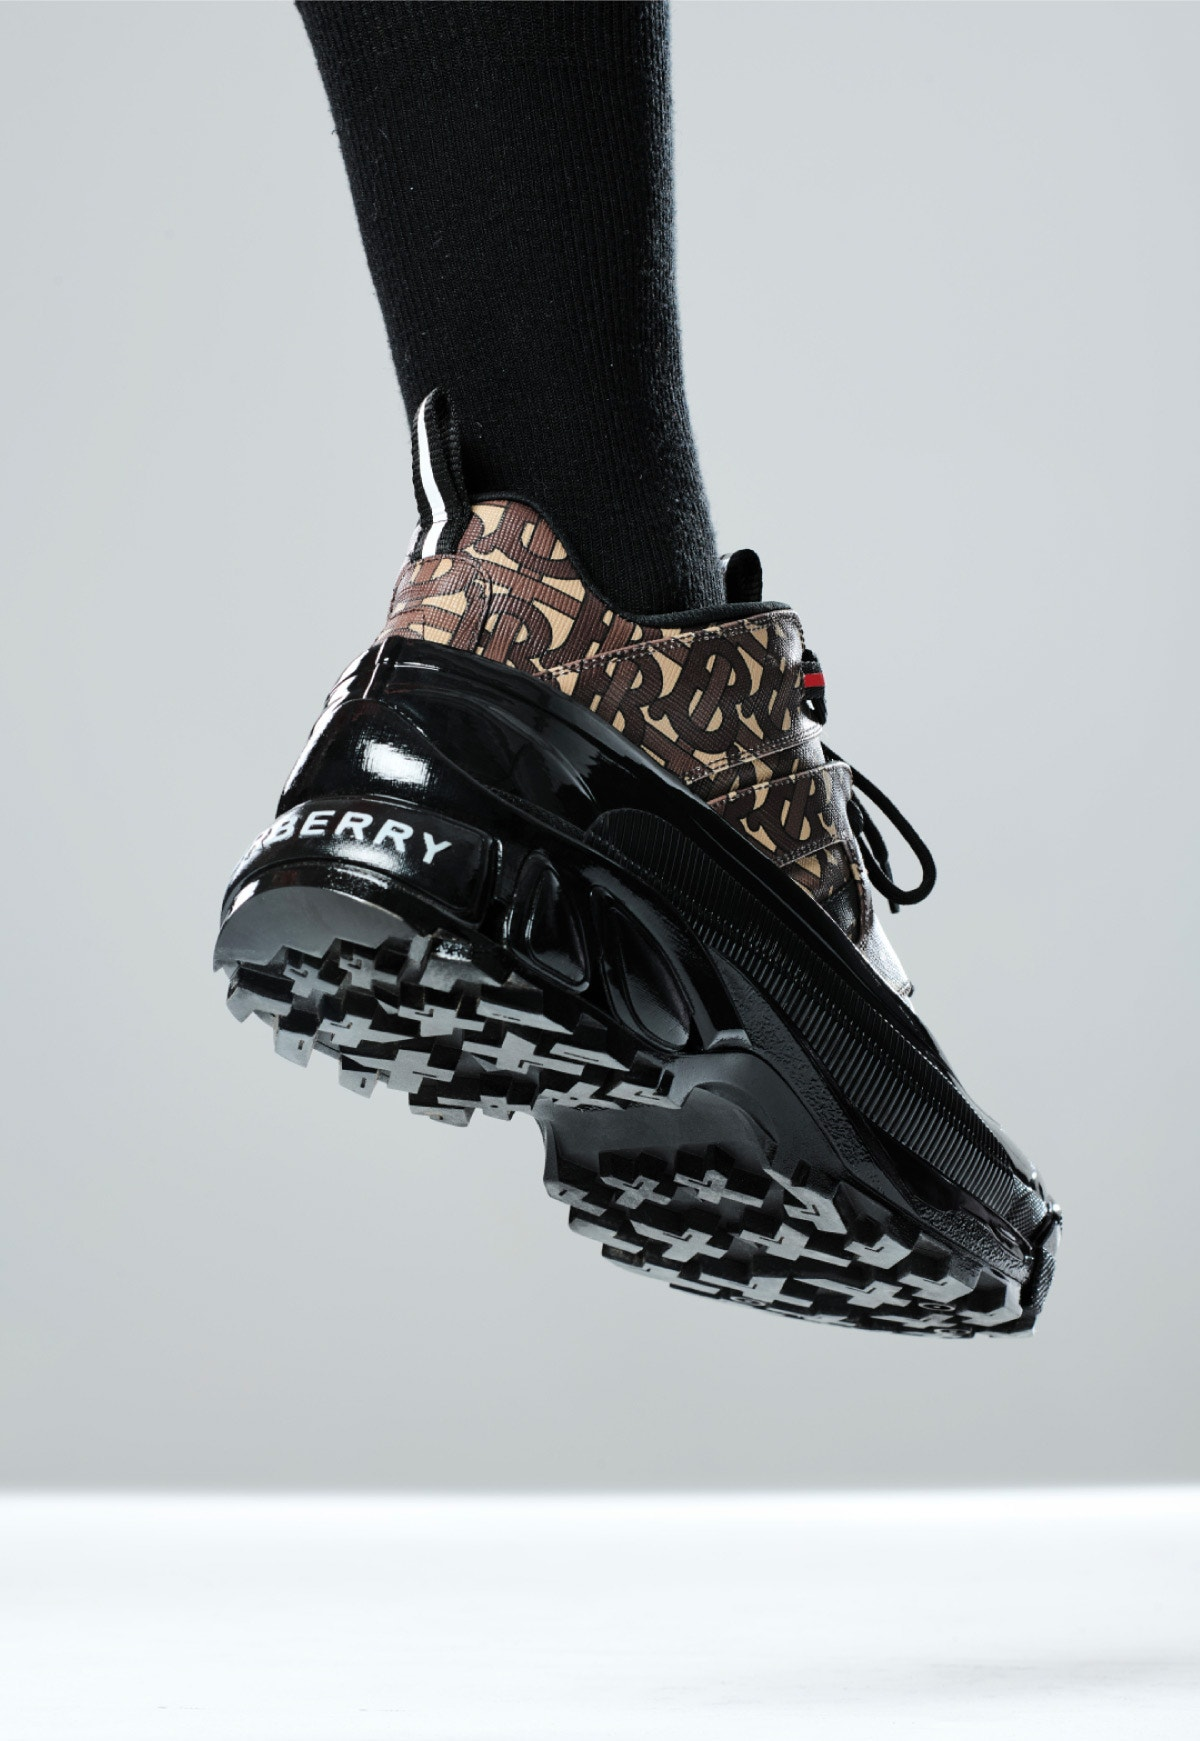 Burberry's new runway sneaker from the Autumn/Winter 2019